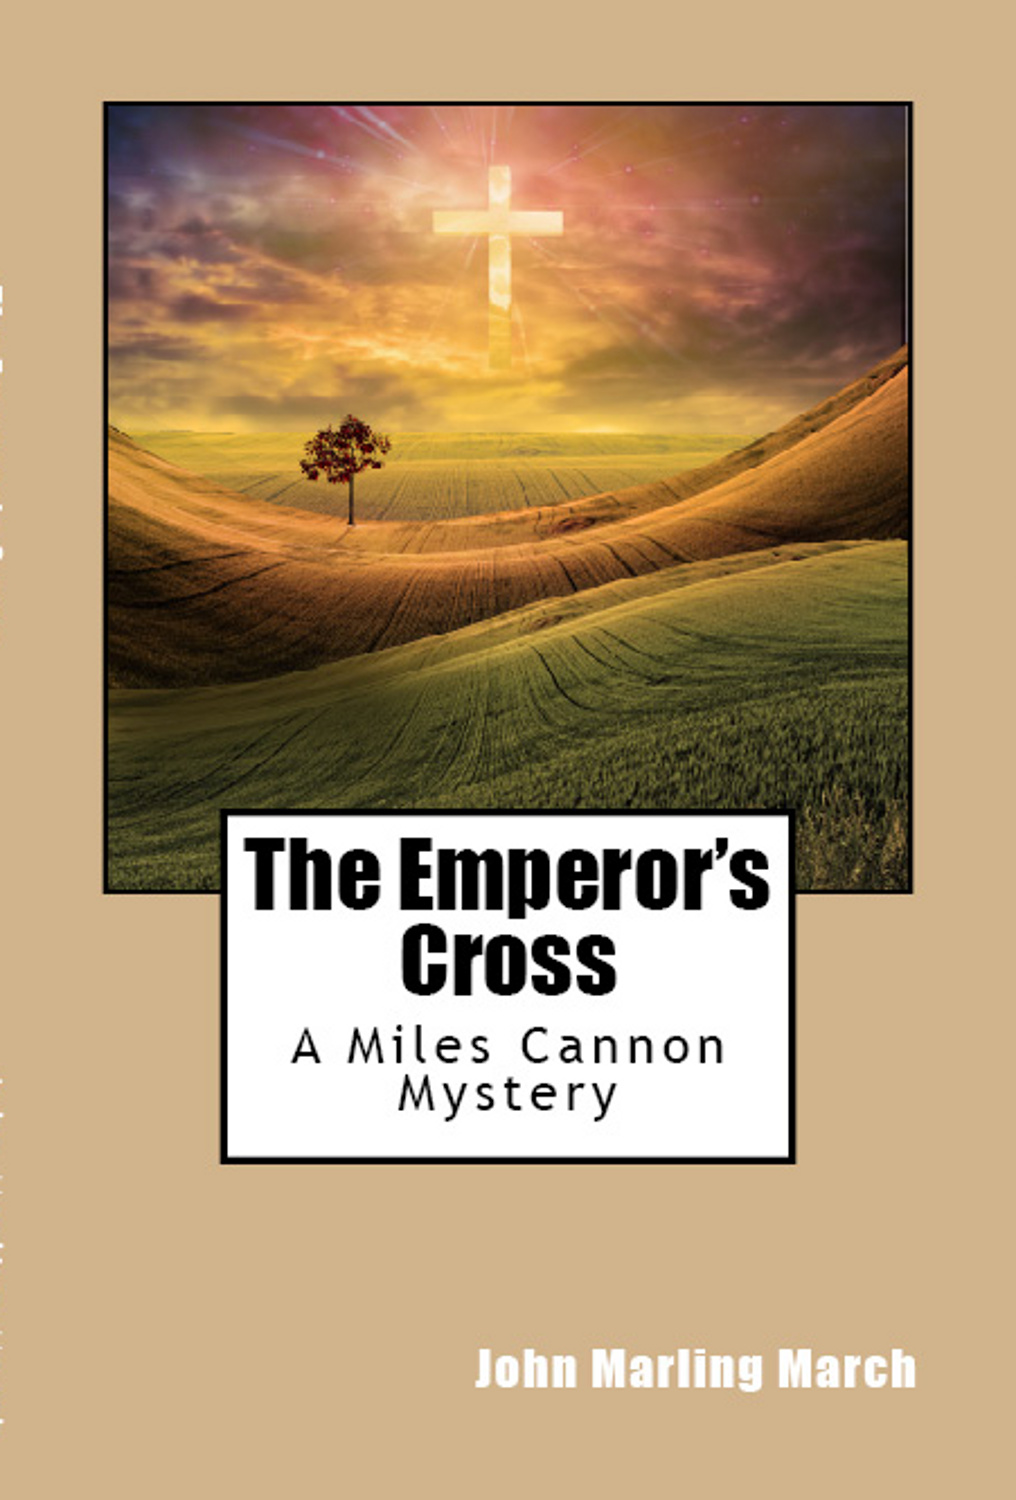 The Emperor's Cross